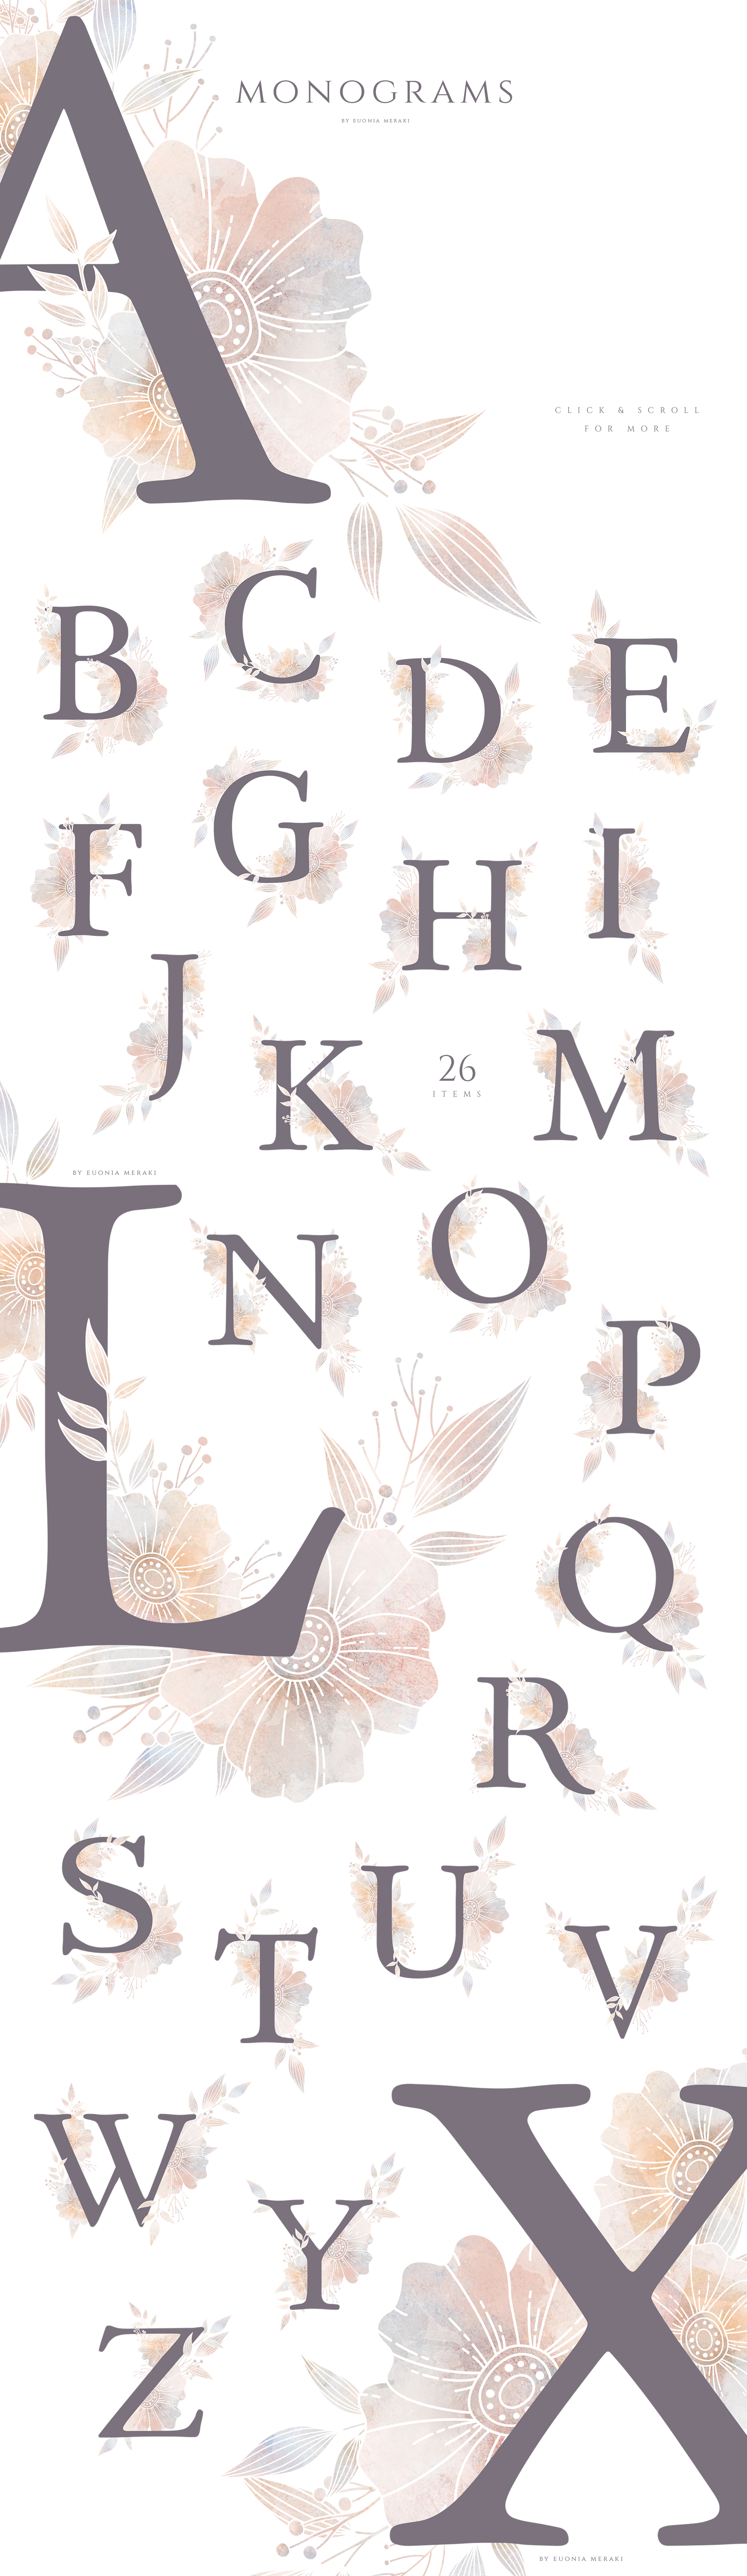 MISTY Dusty Floral Graphics and Monograms example image 10